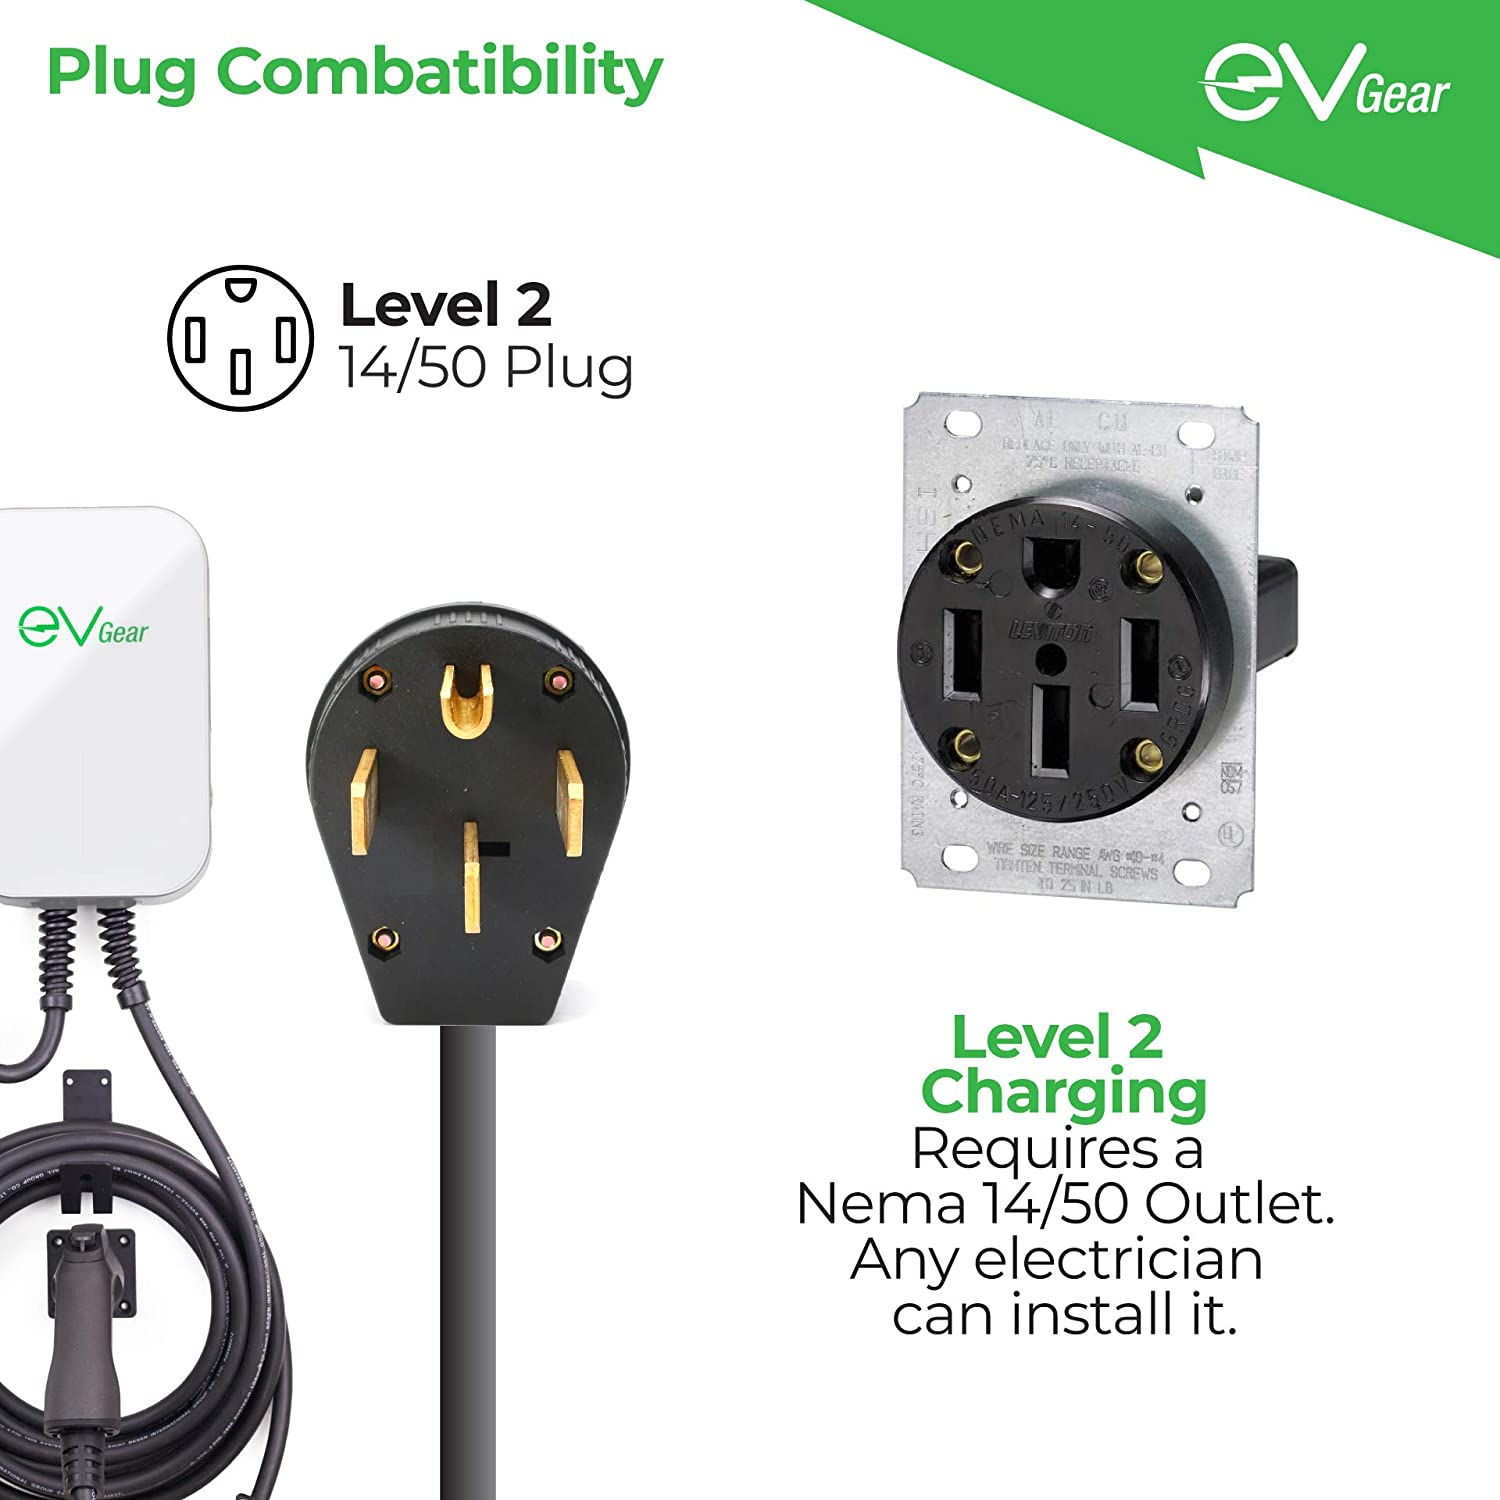 Level 2 40 AMP//240v EV Charger Compatible with All Electric Vehicles NEMA 14-50 Plug EV Gear Charging Station Electric Vehicle Charger Station